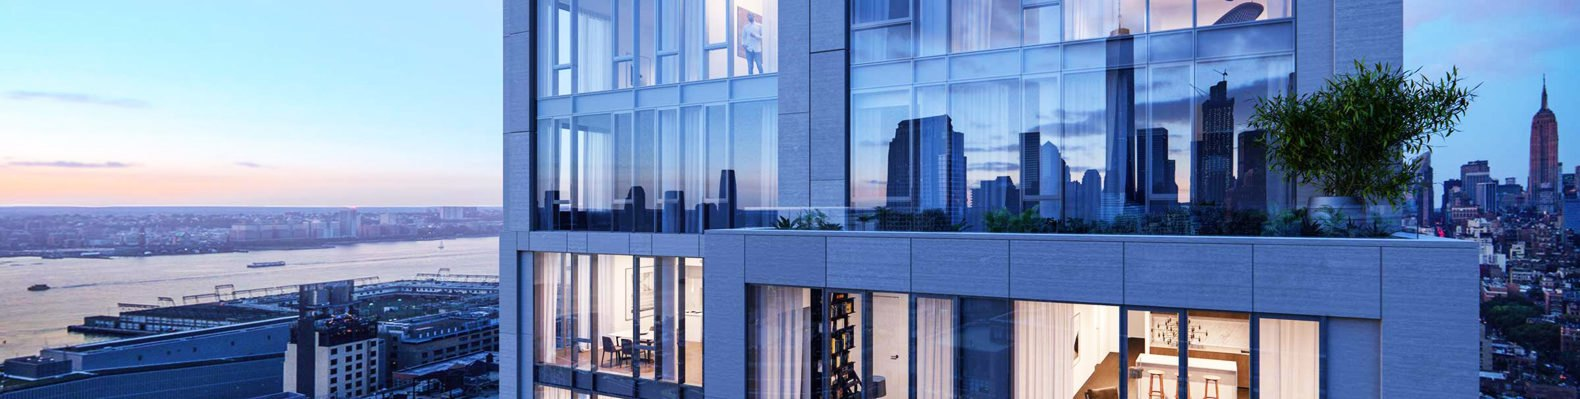 Image shows the exterior of 570 Broome at dusk. The building has tall floor-to-ceiling windows. and is surrounded by impressive views of New York City